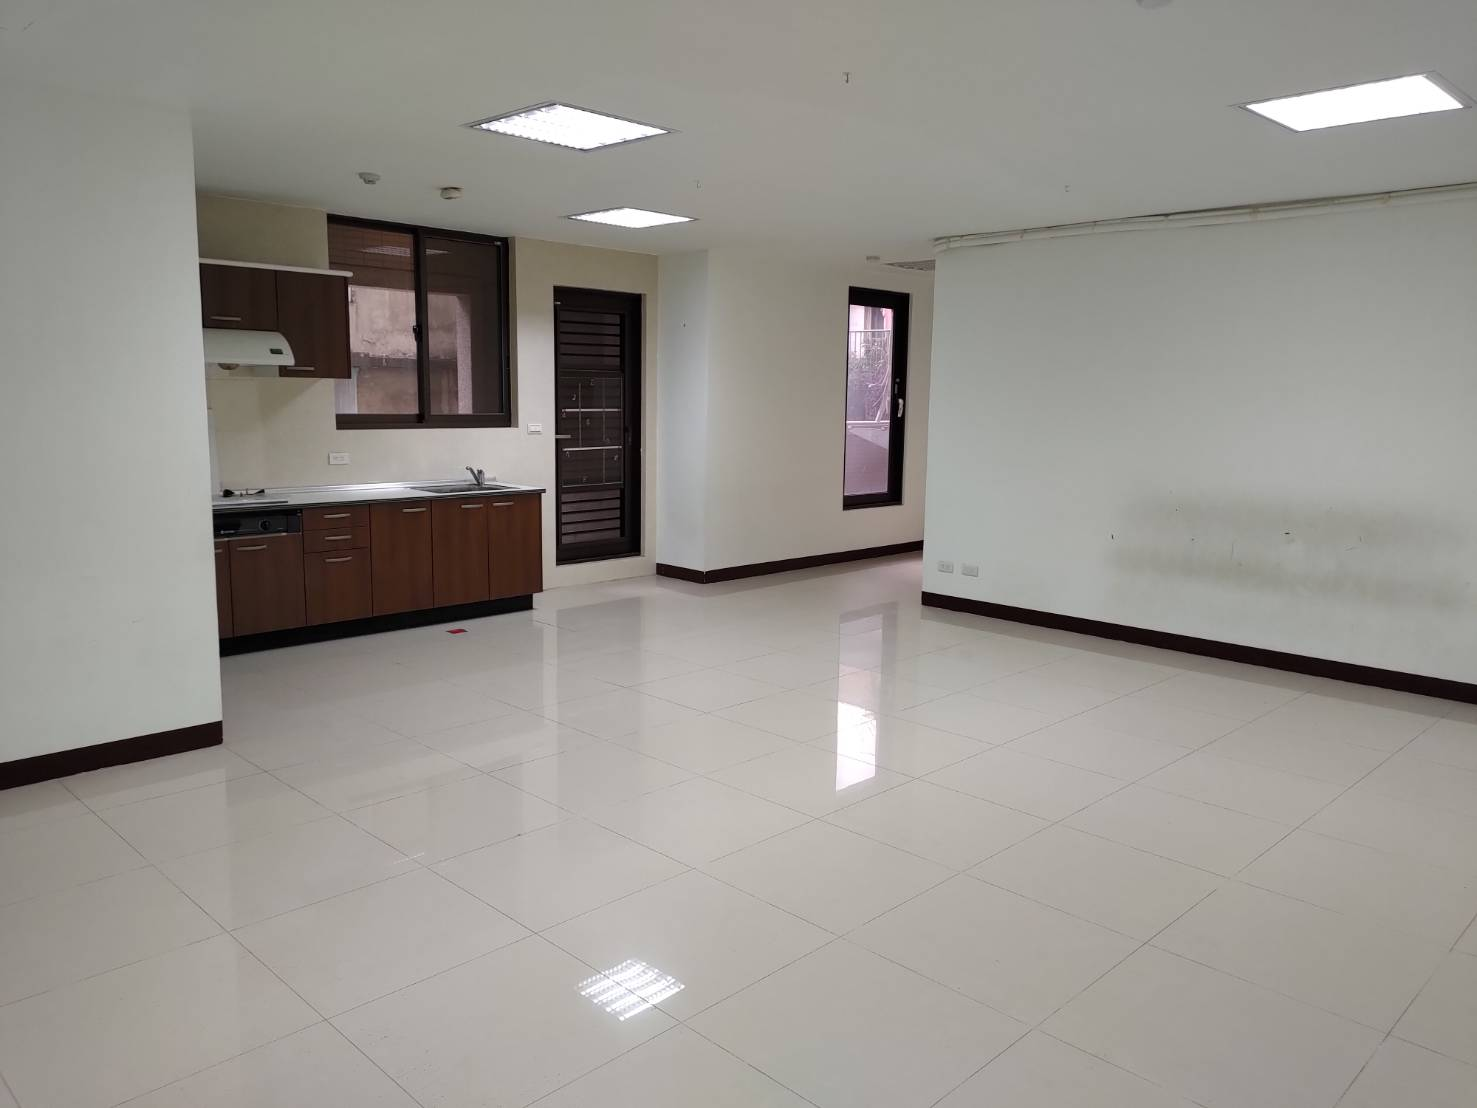 Teaching English and Living in Taiwan Apartments for One Family, Spacious space rent for online office or manpower image